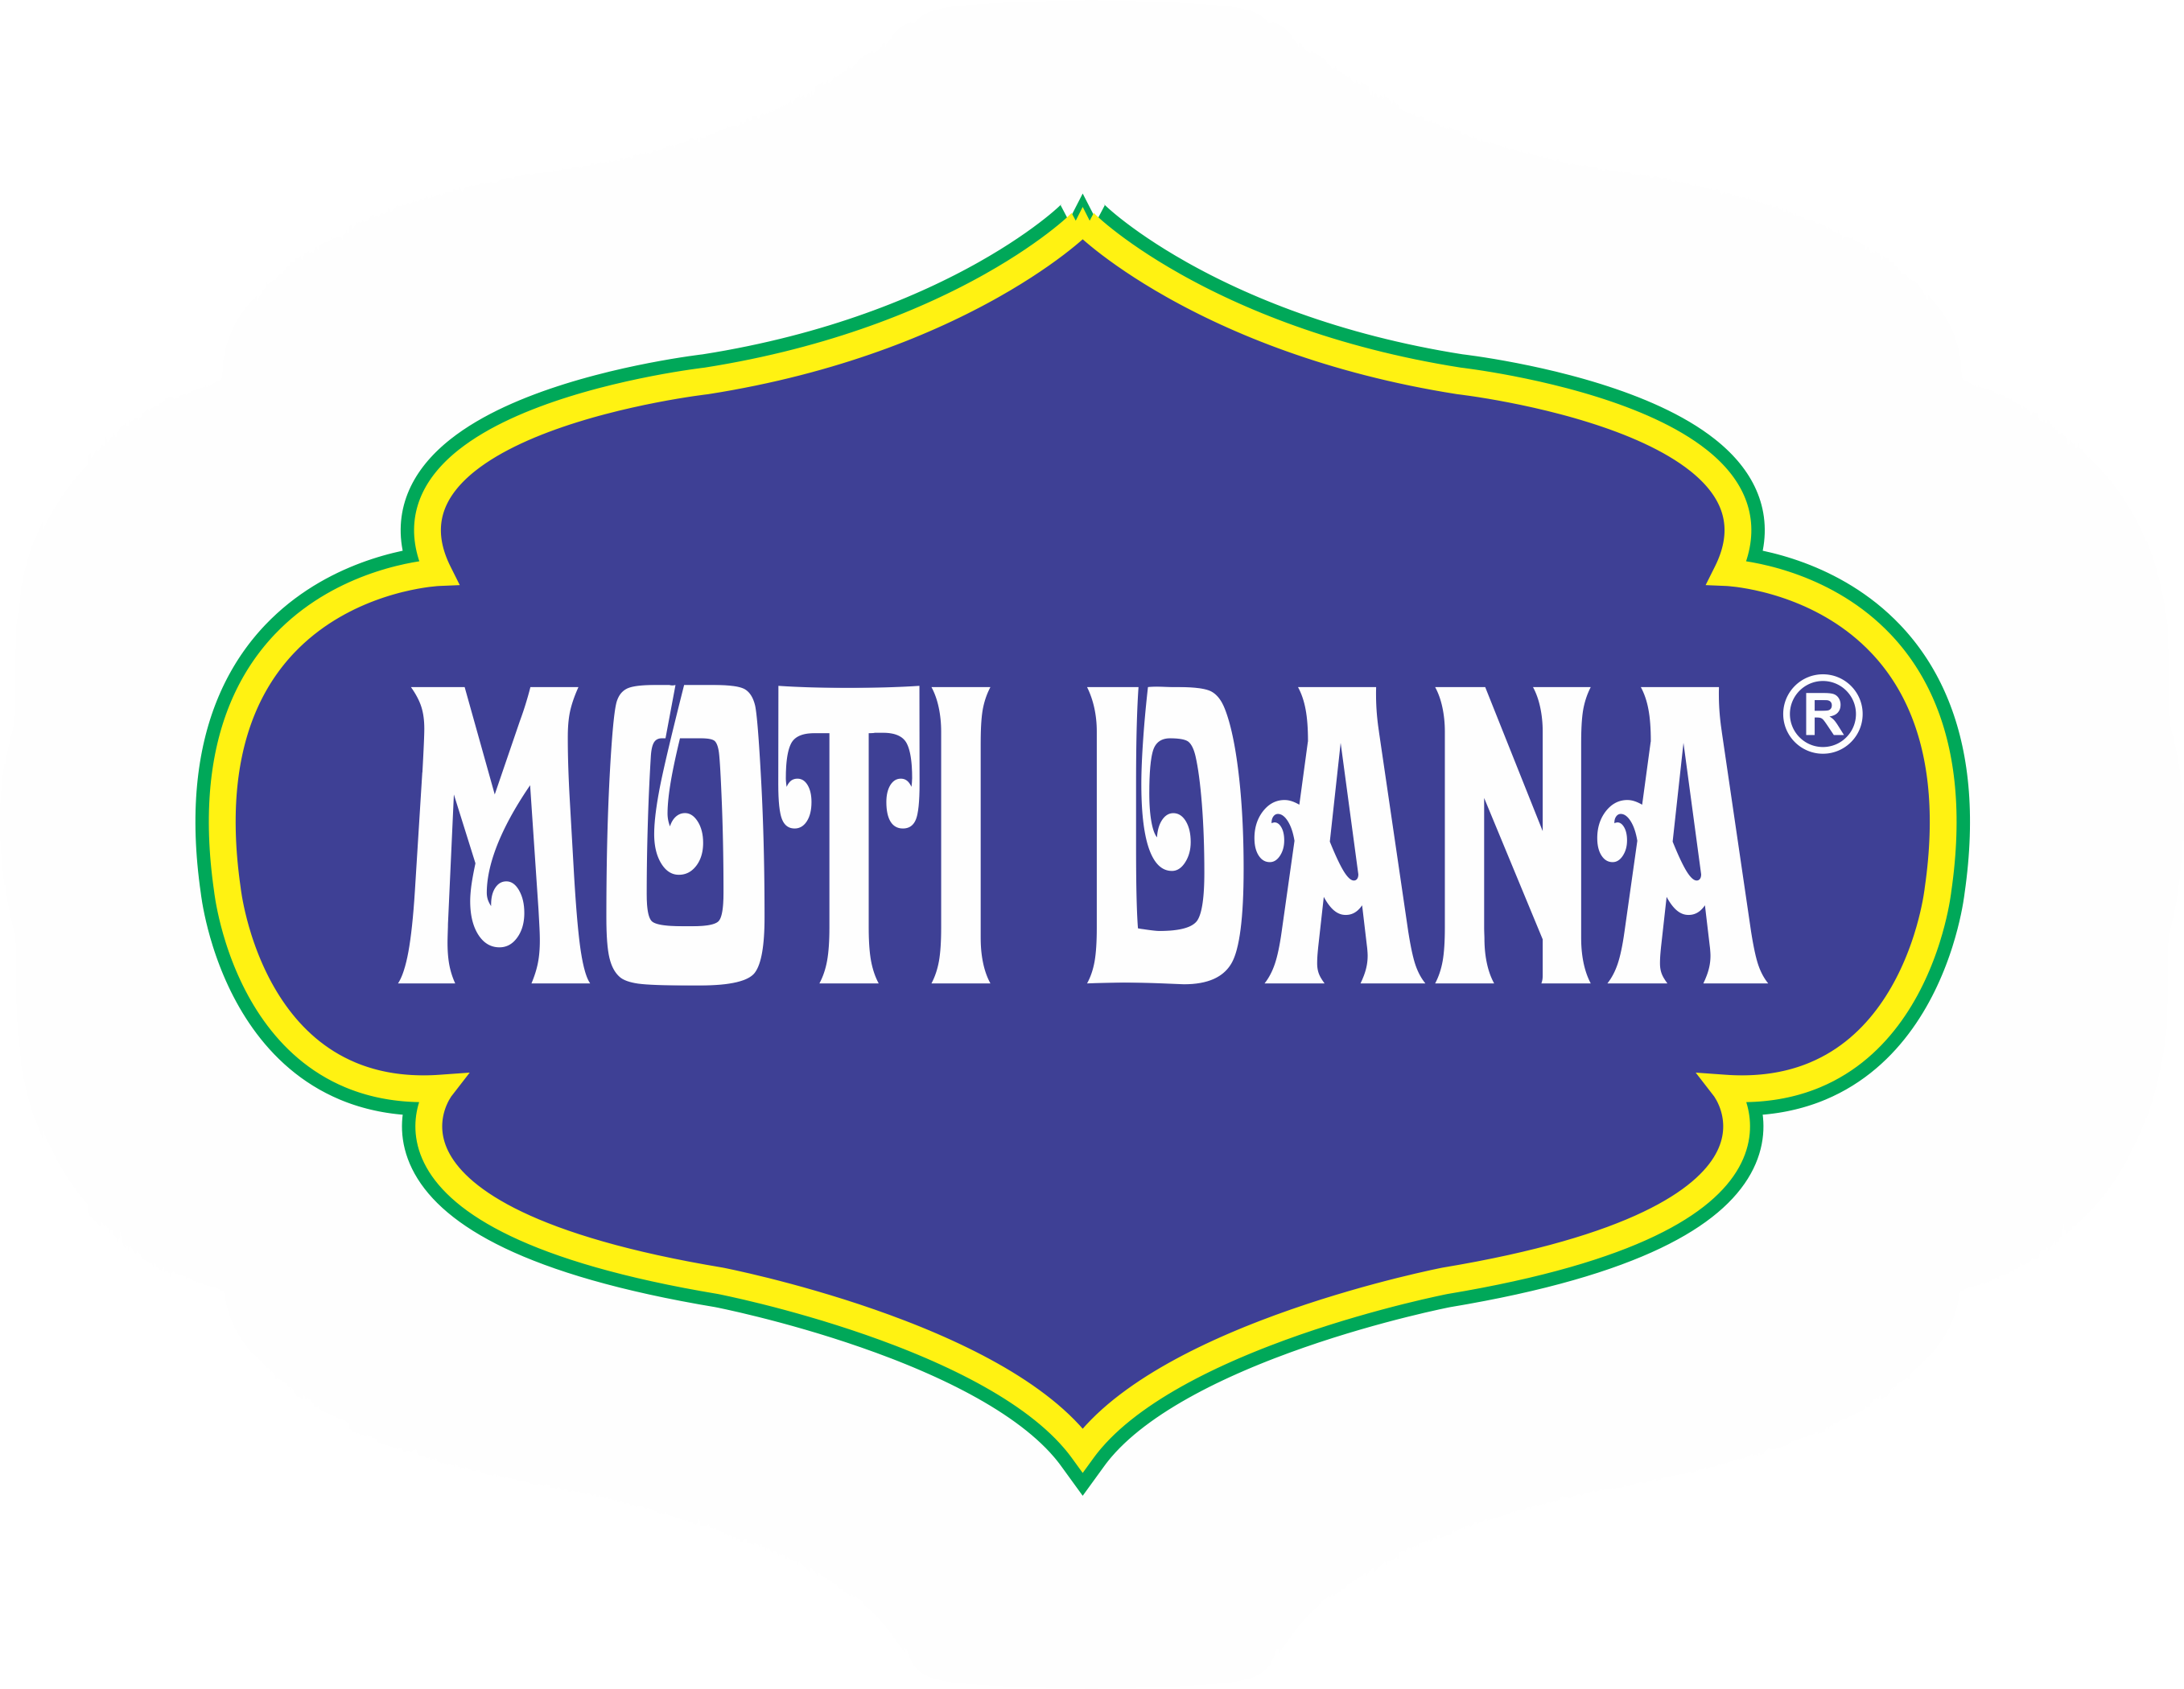 Motidana by Al Asad Rice Mills